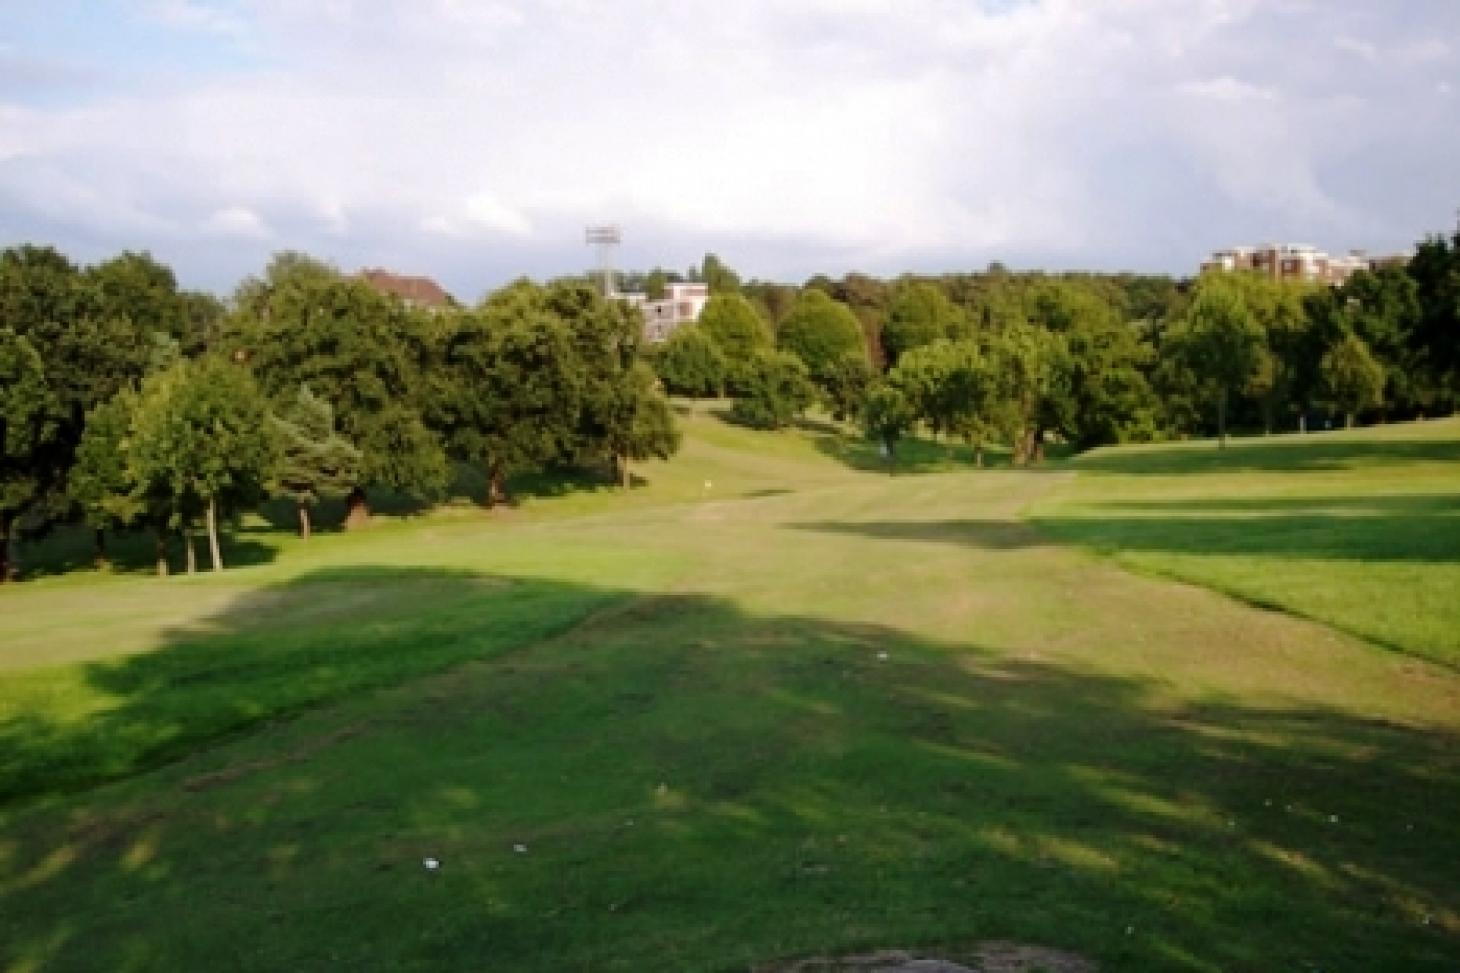 Hanger Hill Park Pitch and Putt 9 hole golf course